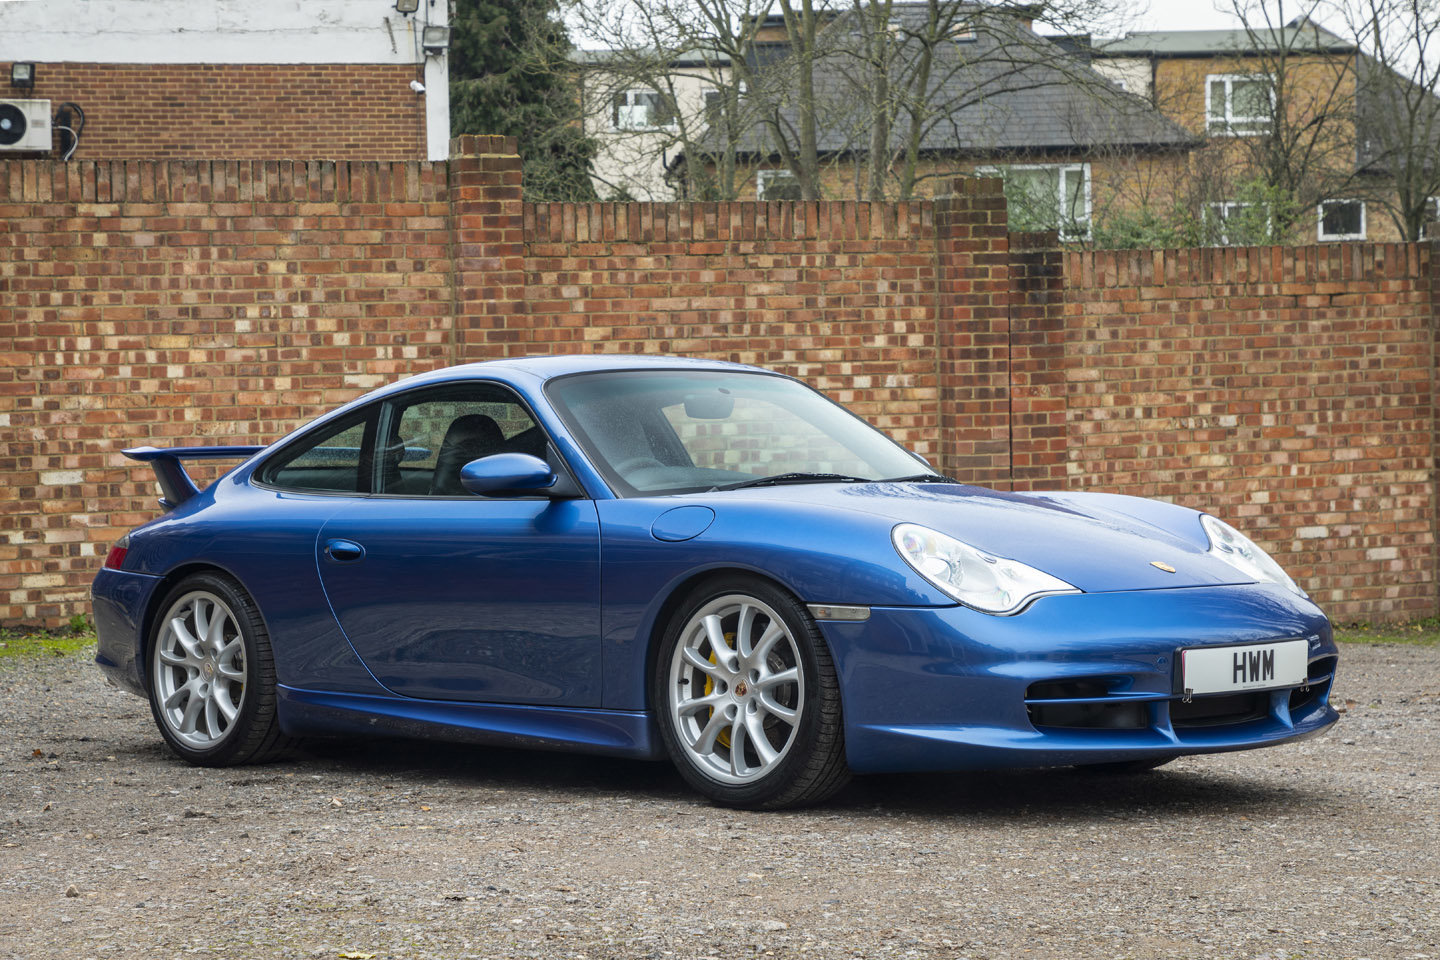 2003 PORSCHE 996 GT3 RHD COBALT BLUE METALLIC For Sale (picture 1 of 6)